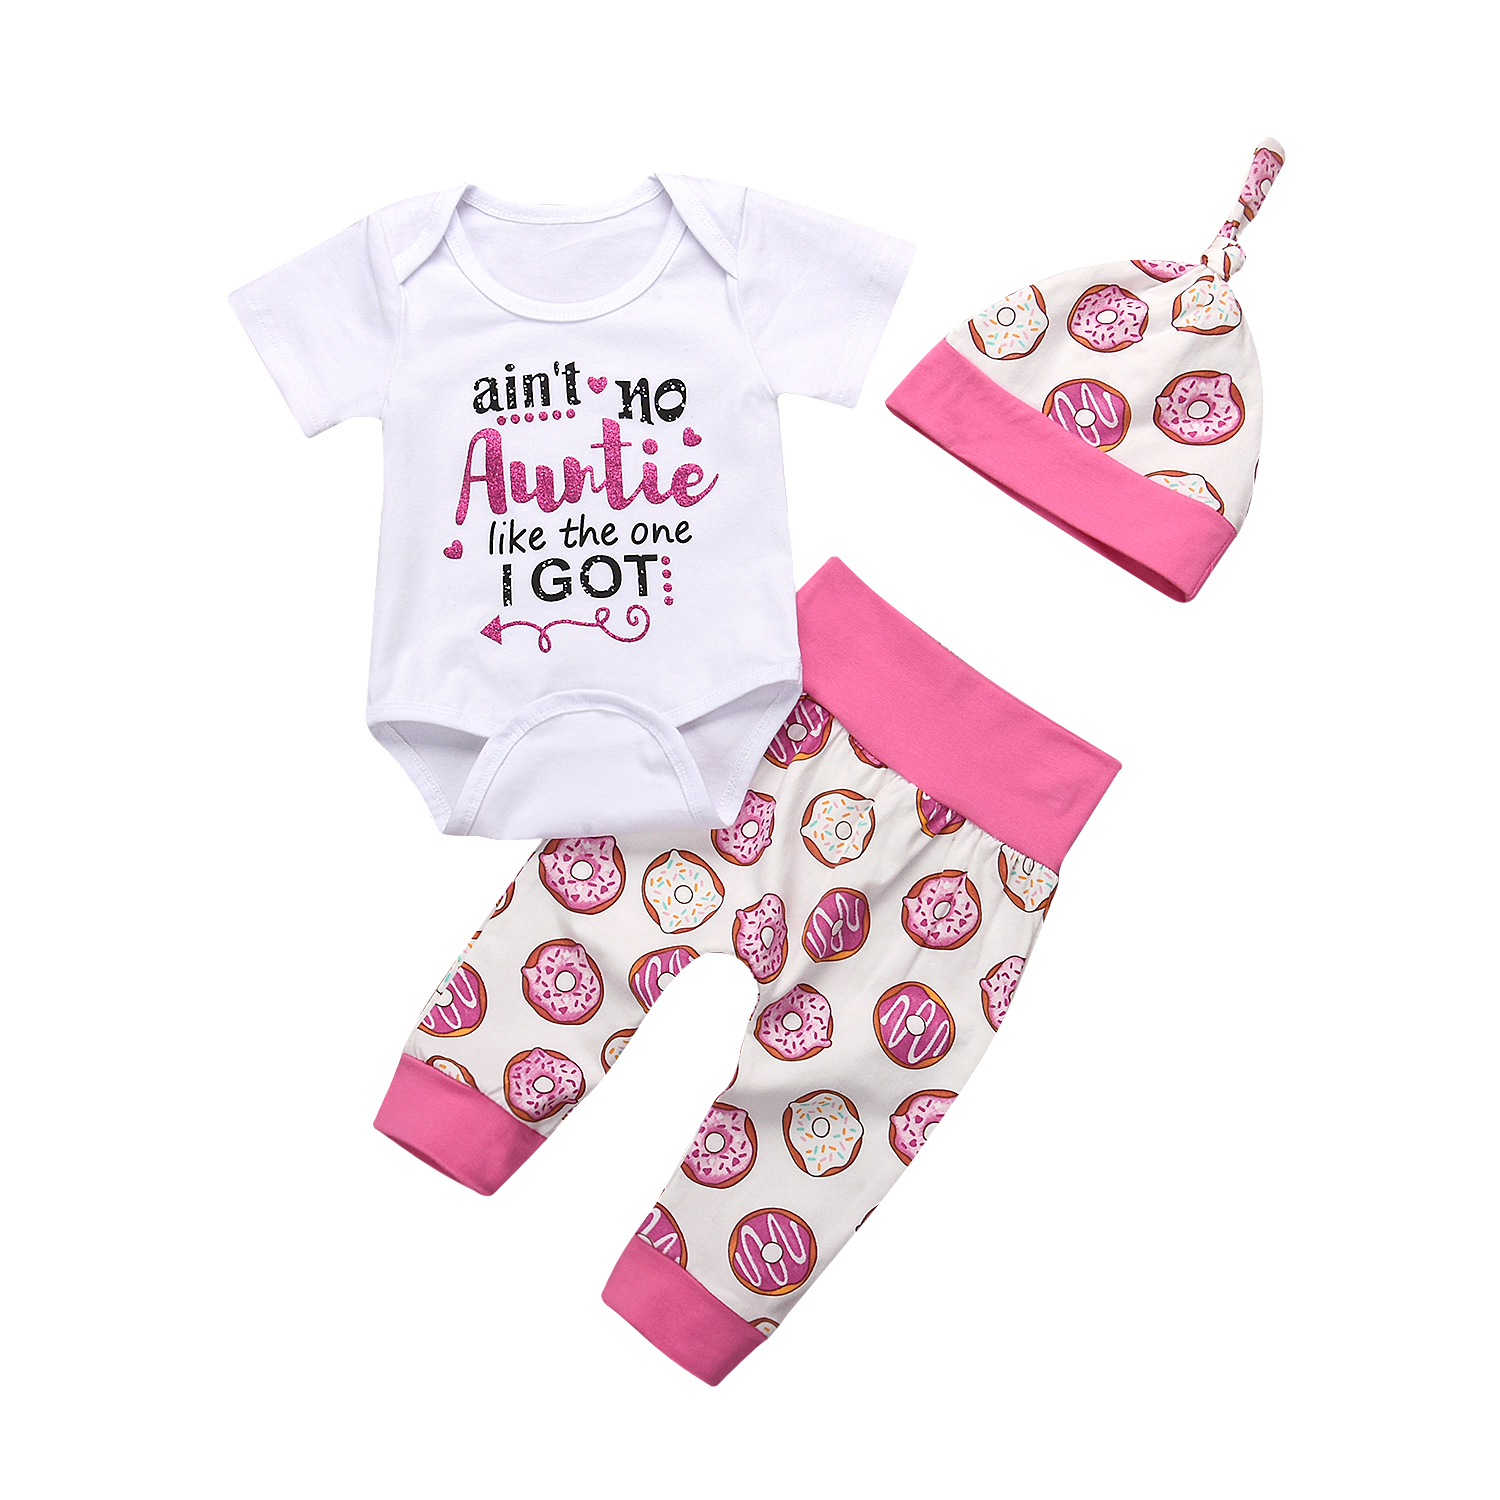 f8aa8967a1fd3 Pudcoco 2019 Summer Newborn Baby Boy Girls Clothes Donuts Outfits Set  Clothes Romper Jumpsuit+Pants 3pcs Set